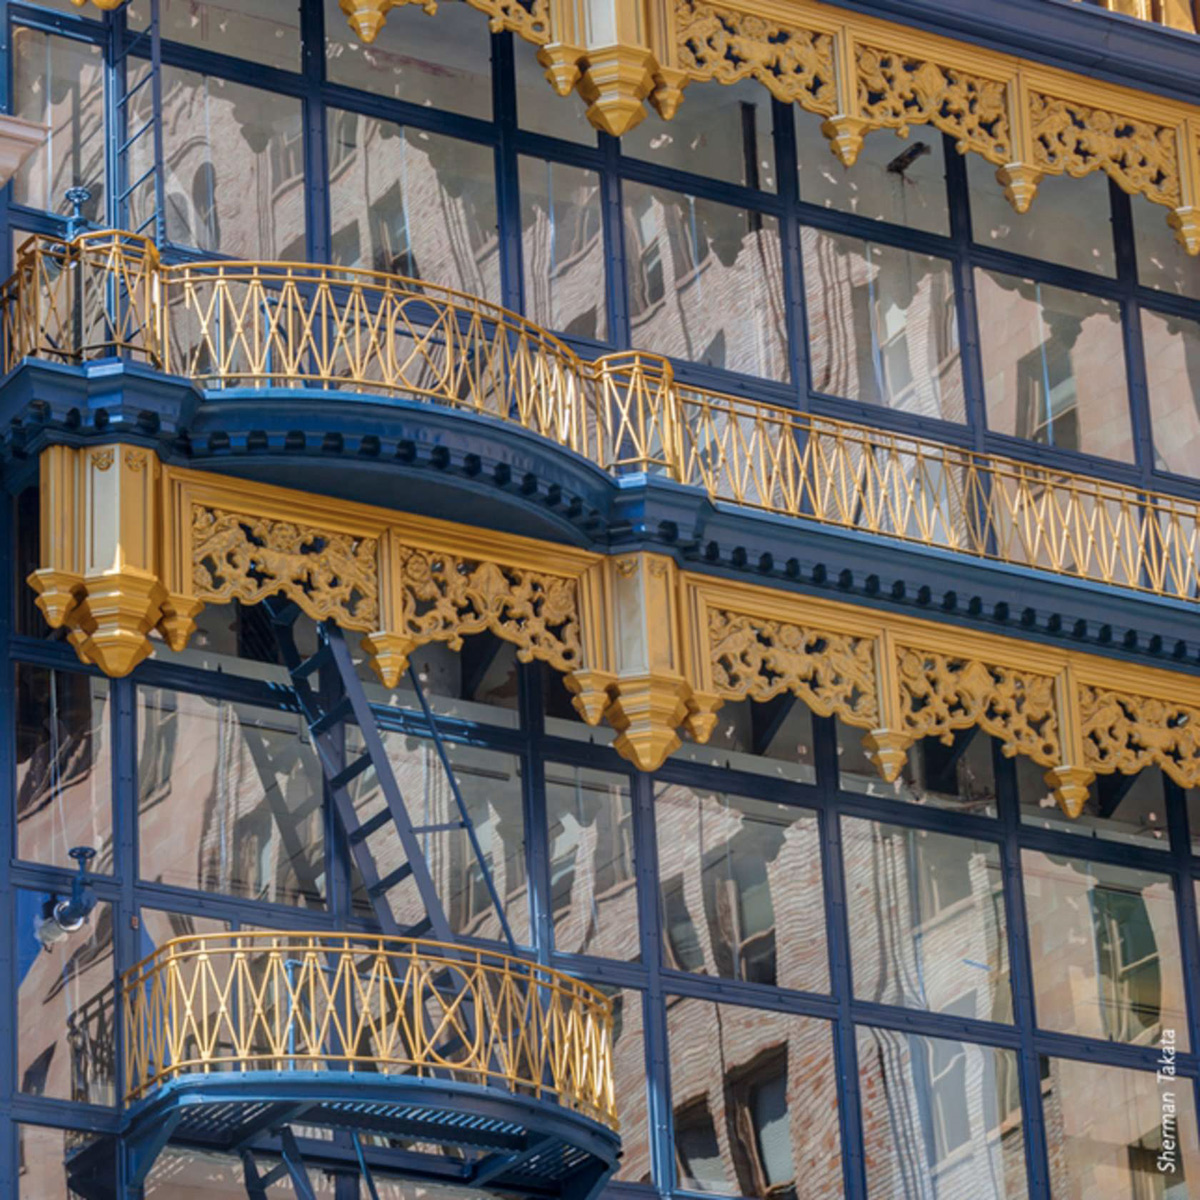 Hallidie Building San Francisco Glass Curtain Wall Facade Tnemec Fluoronar Lumiflon FEVE